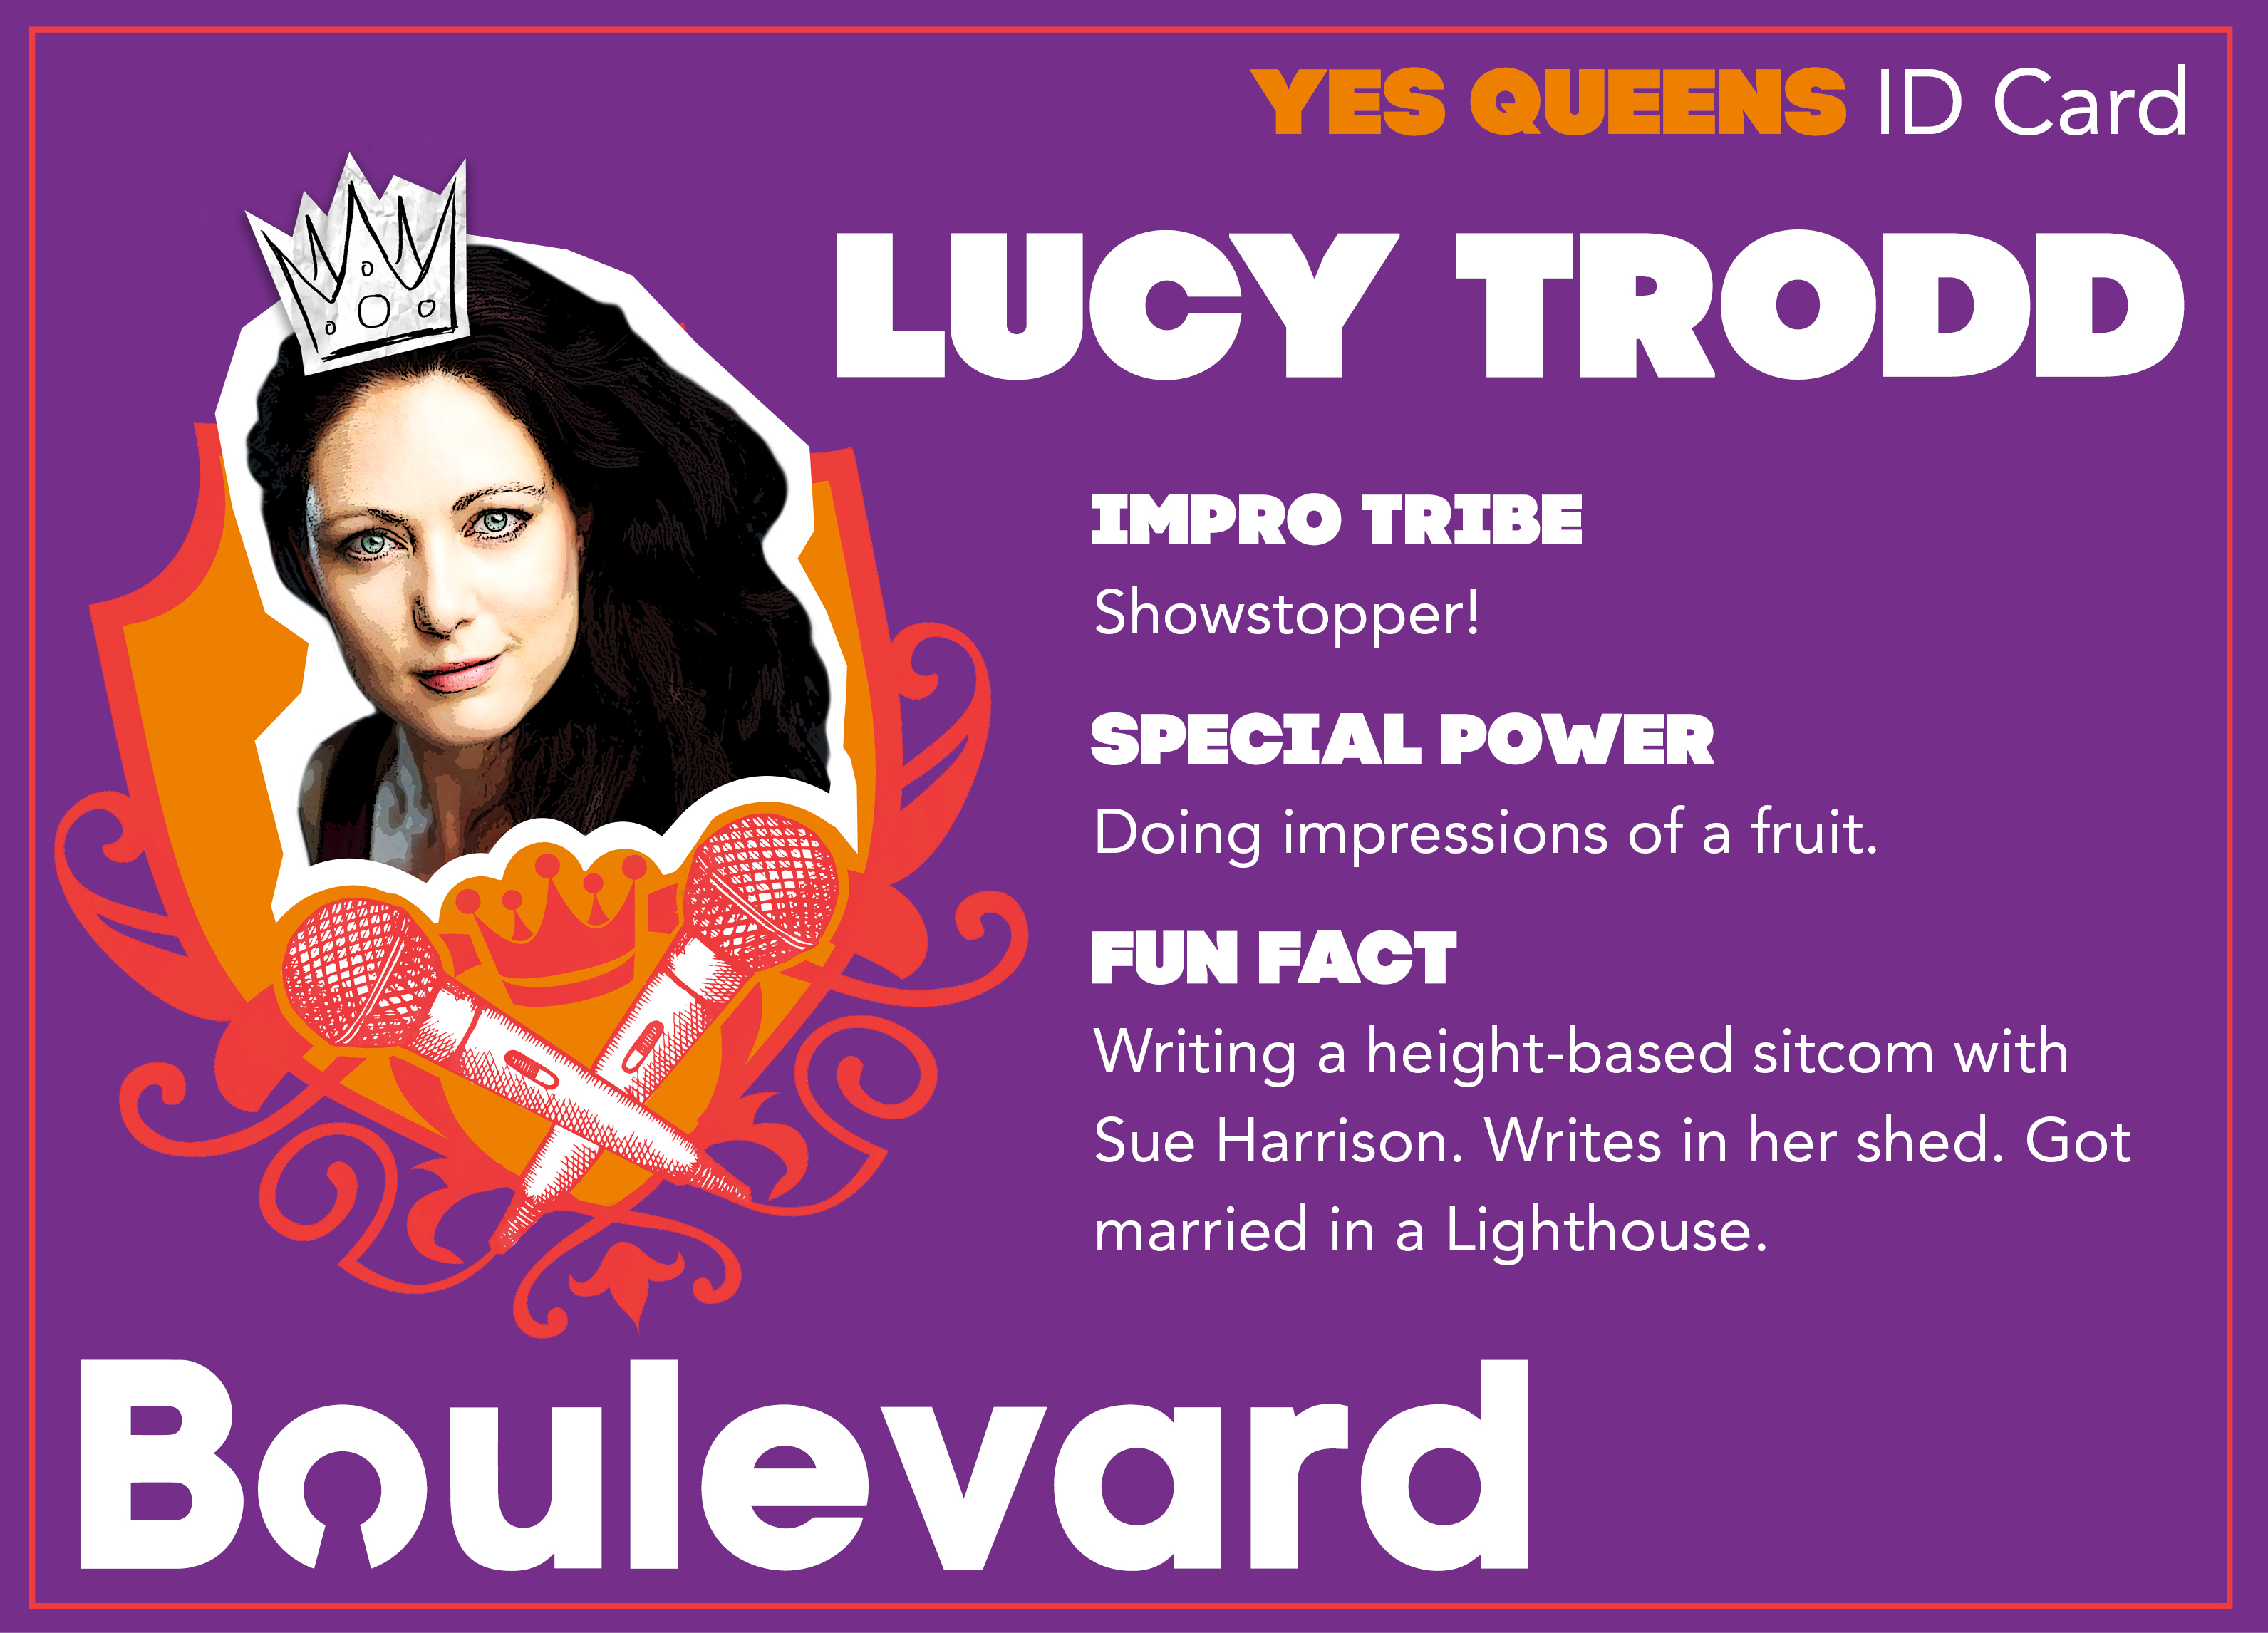 Yes Queens ID Card Lucy